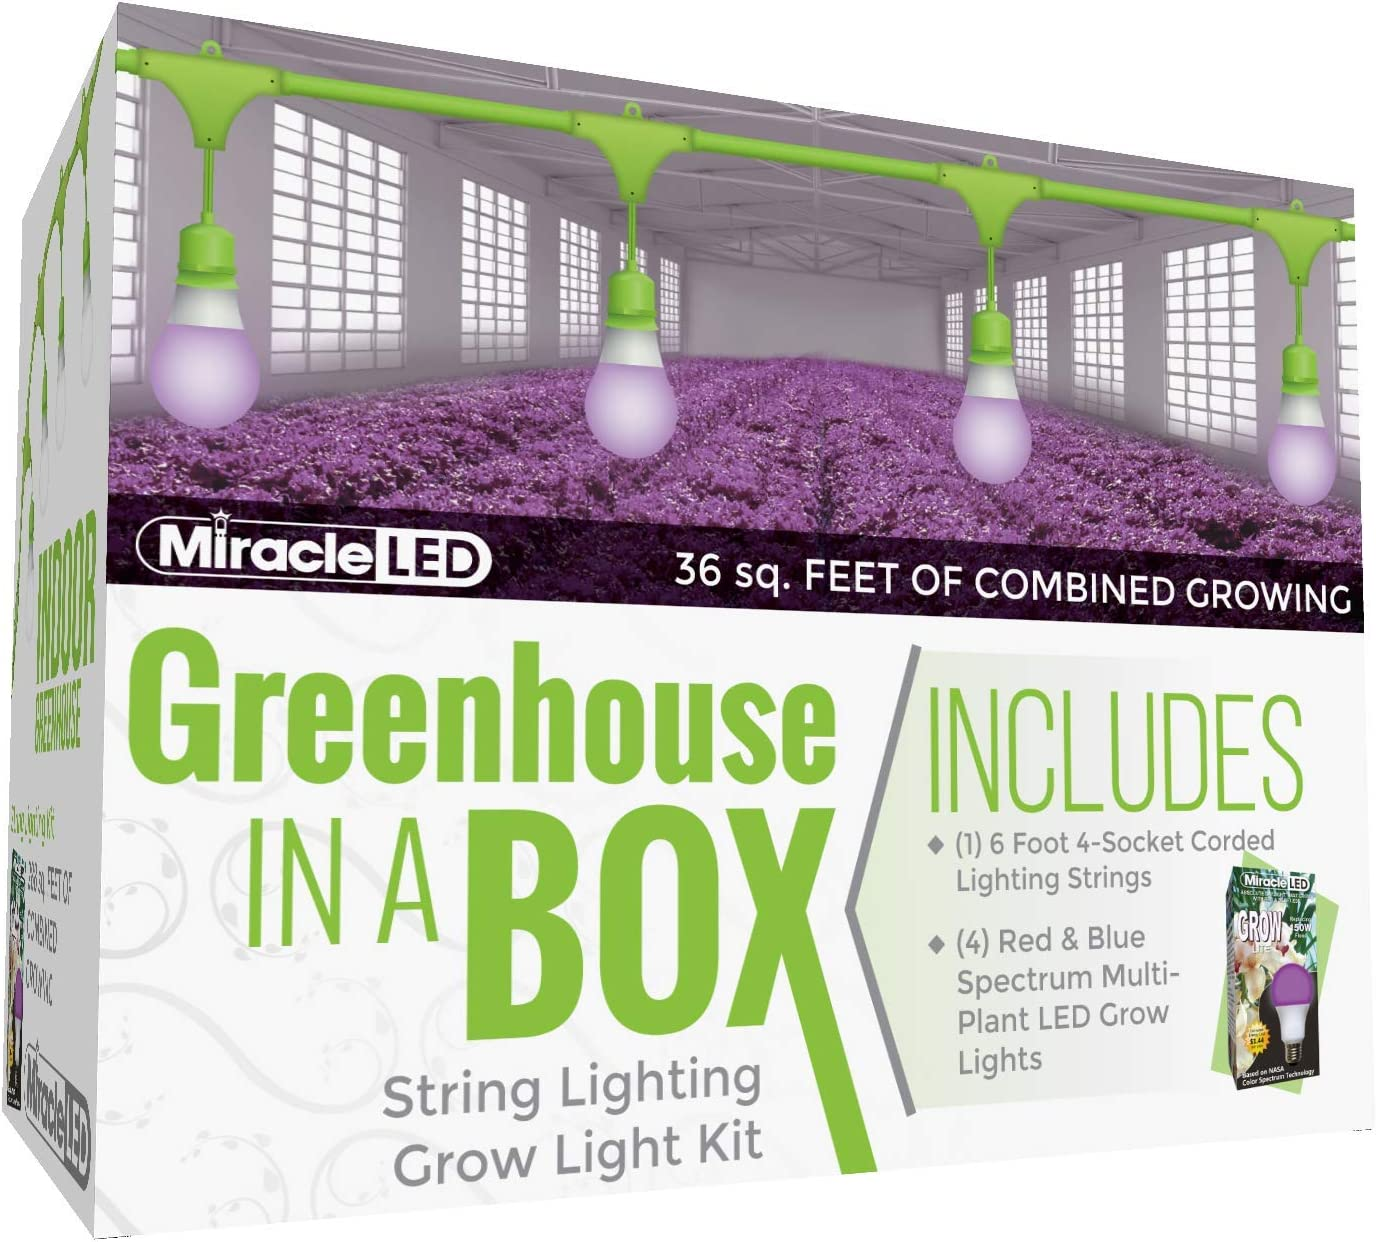 Miracle LED Greenhouse in a Box Grow Kit for Indoor Plants - Red & Blue Spectrum Yield Grow 150W Grow Light Bulbs & 4-Socket Corded Light Fixture